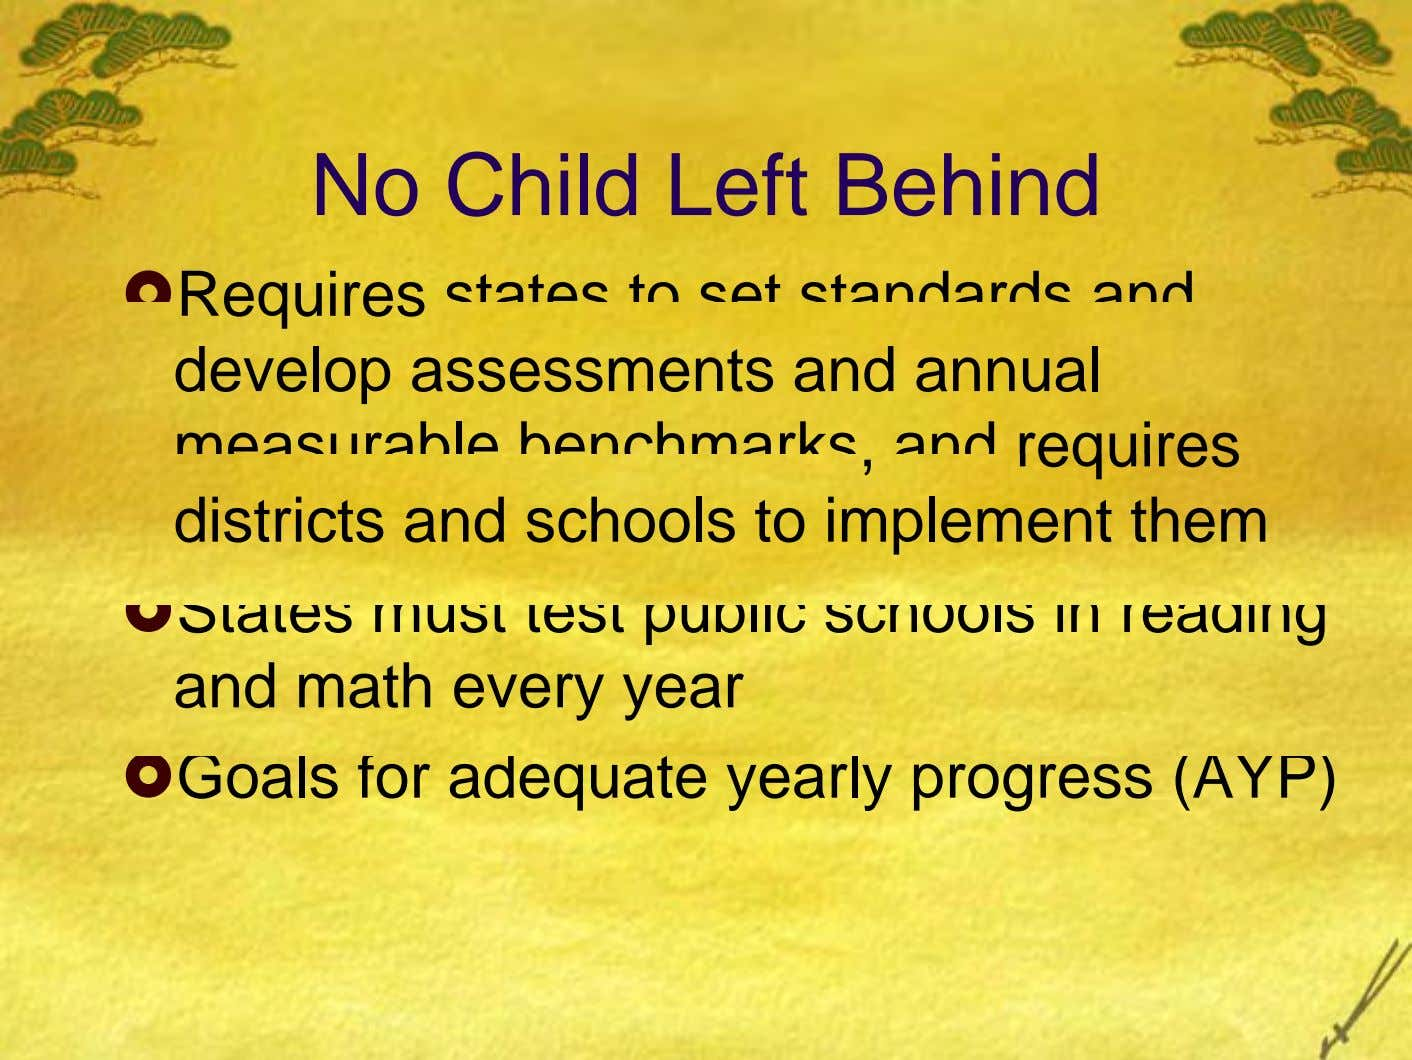 No Child Left Behind Requires states to set standards and develop assessments and annual measurable benchmarks,